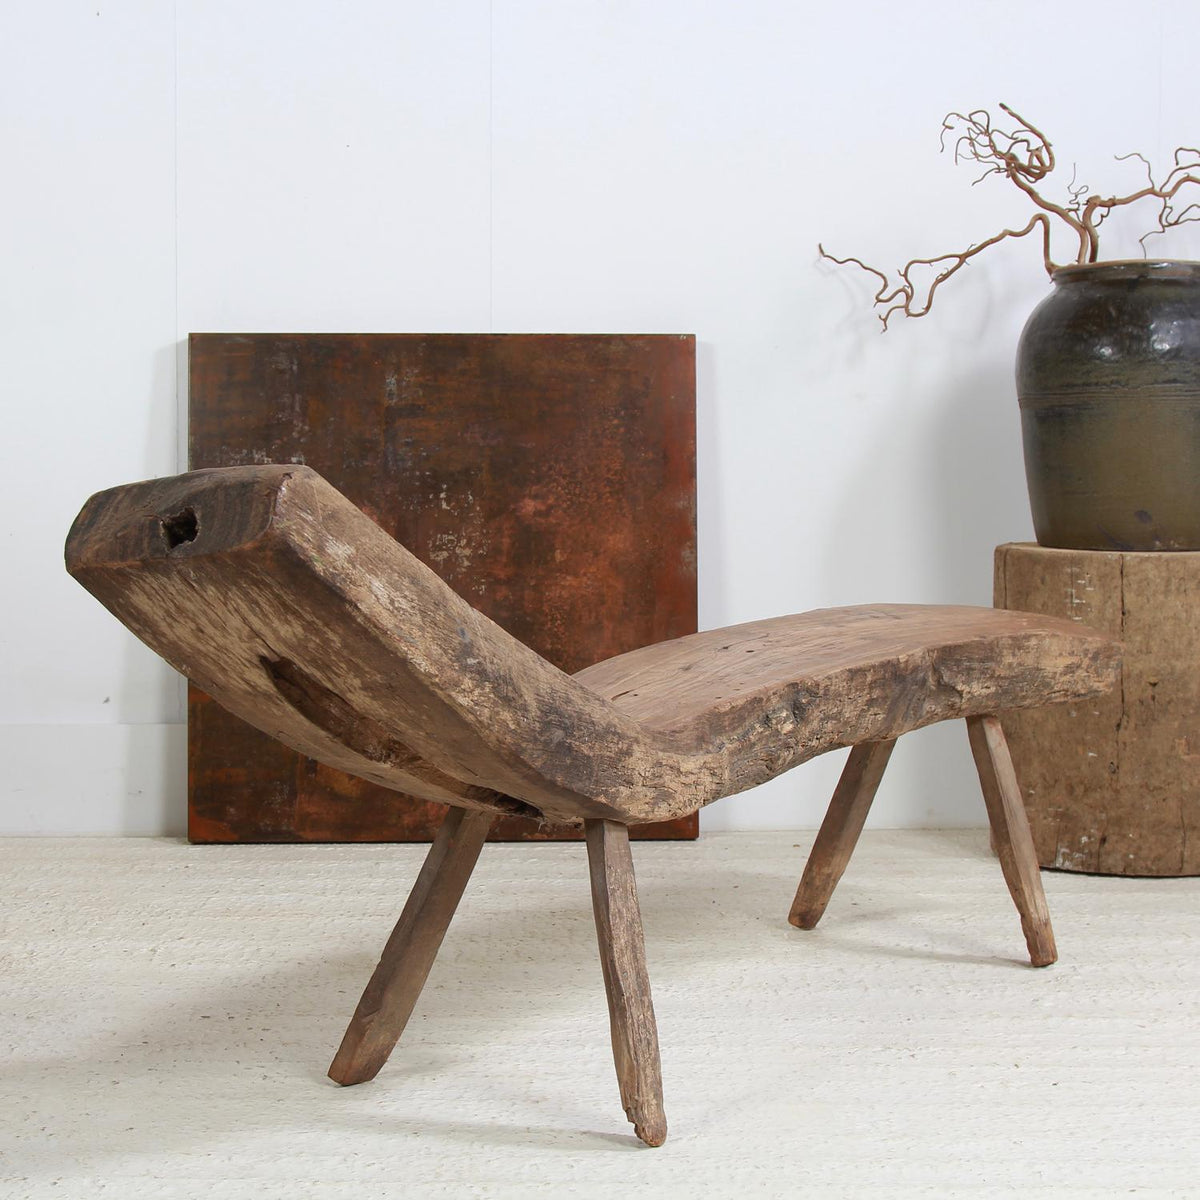 Impressive Antique Primitive Wabi Sabi Teak Bench